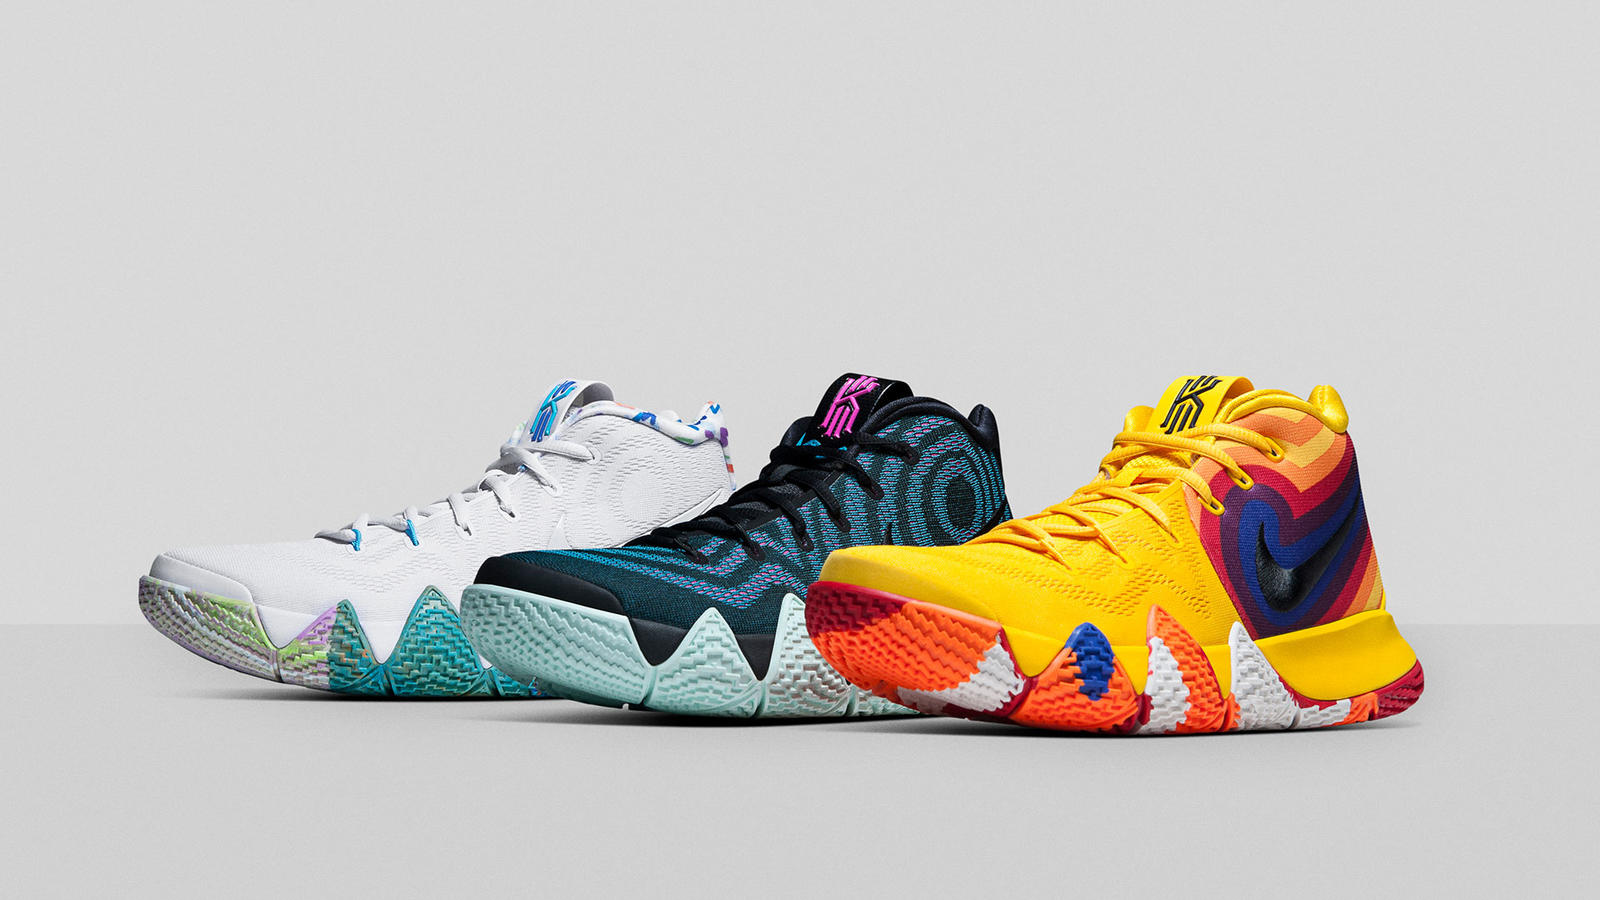 49963c36624b KYRIE 4 Decades Pack - Nike News